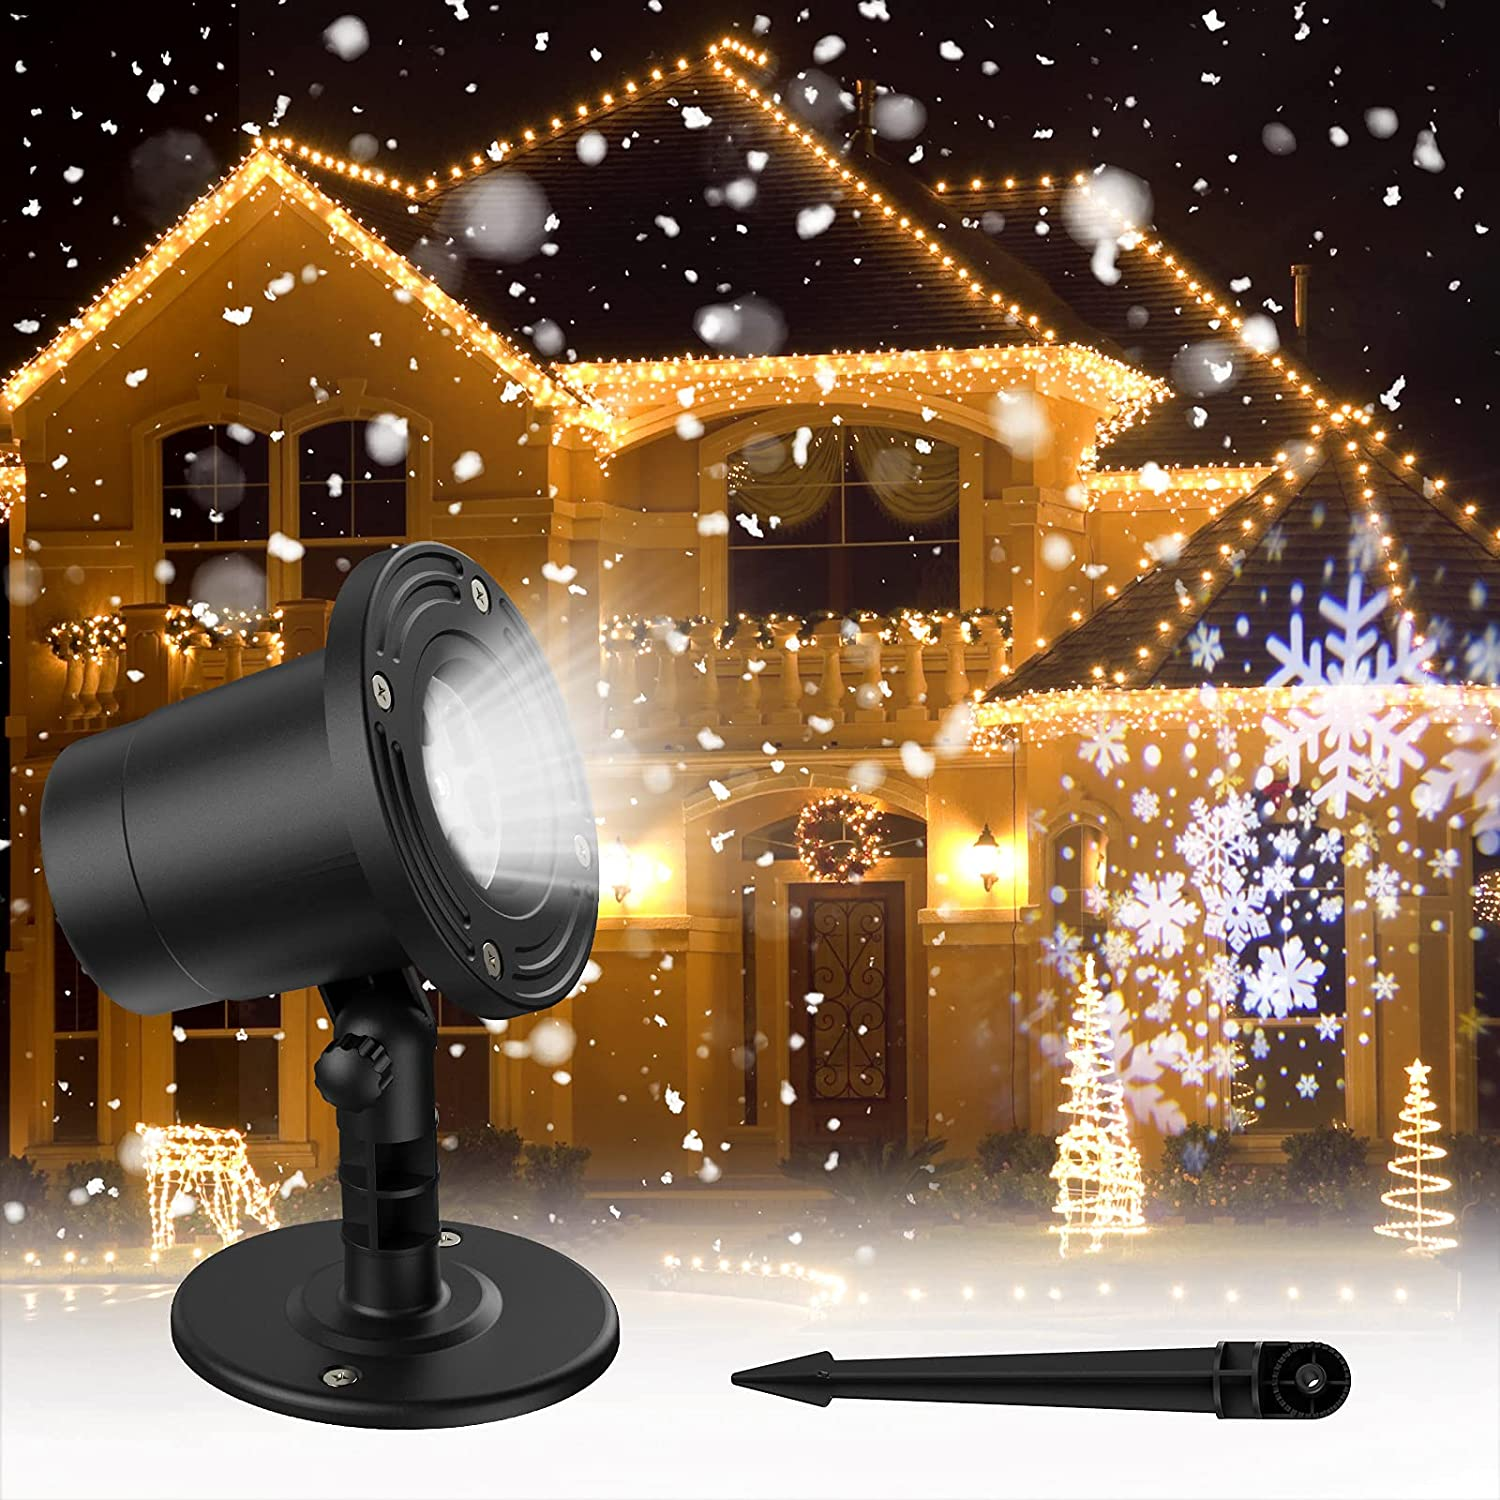 Gaiatop Christmas Snowflake Projector Lights, Highlight Version Led Snowfall Show Projector, Waterproof Landscape Christmas Decorations Lighting for Xmas Home Party Wedding Garden Patio